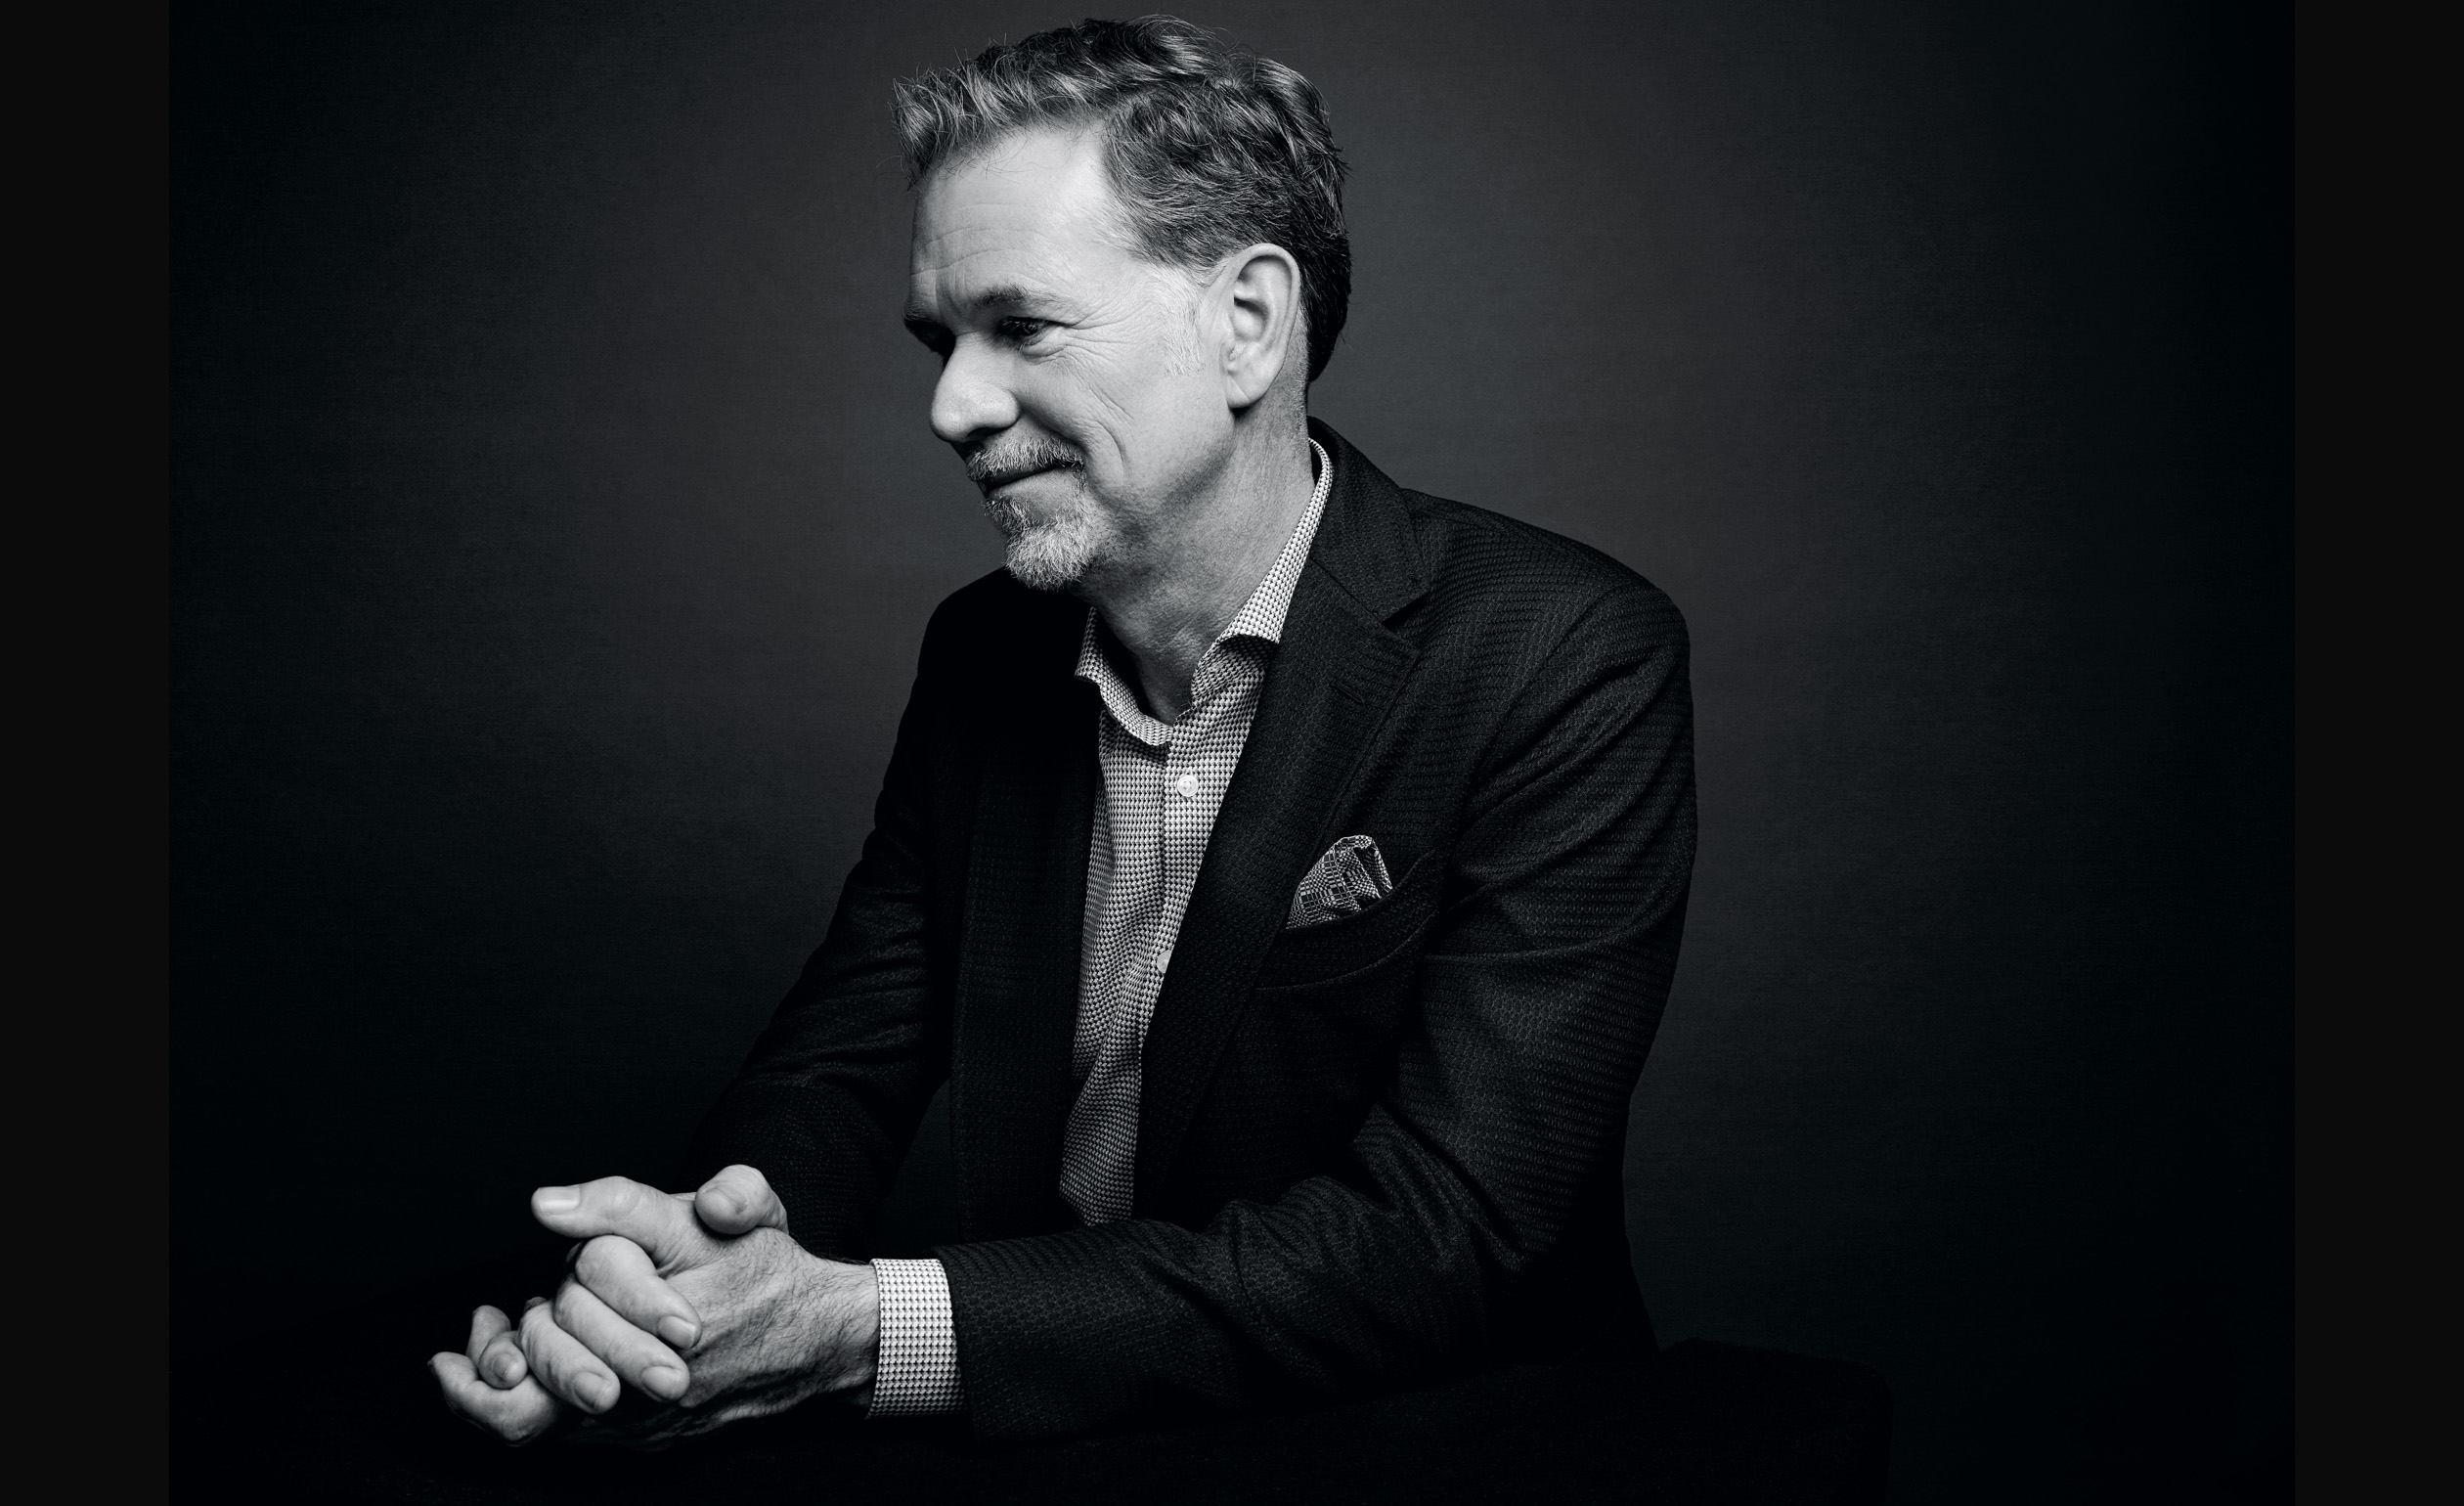 Netflix founder and CEO, Reed Hastings